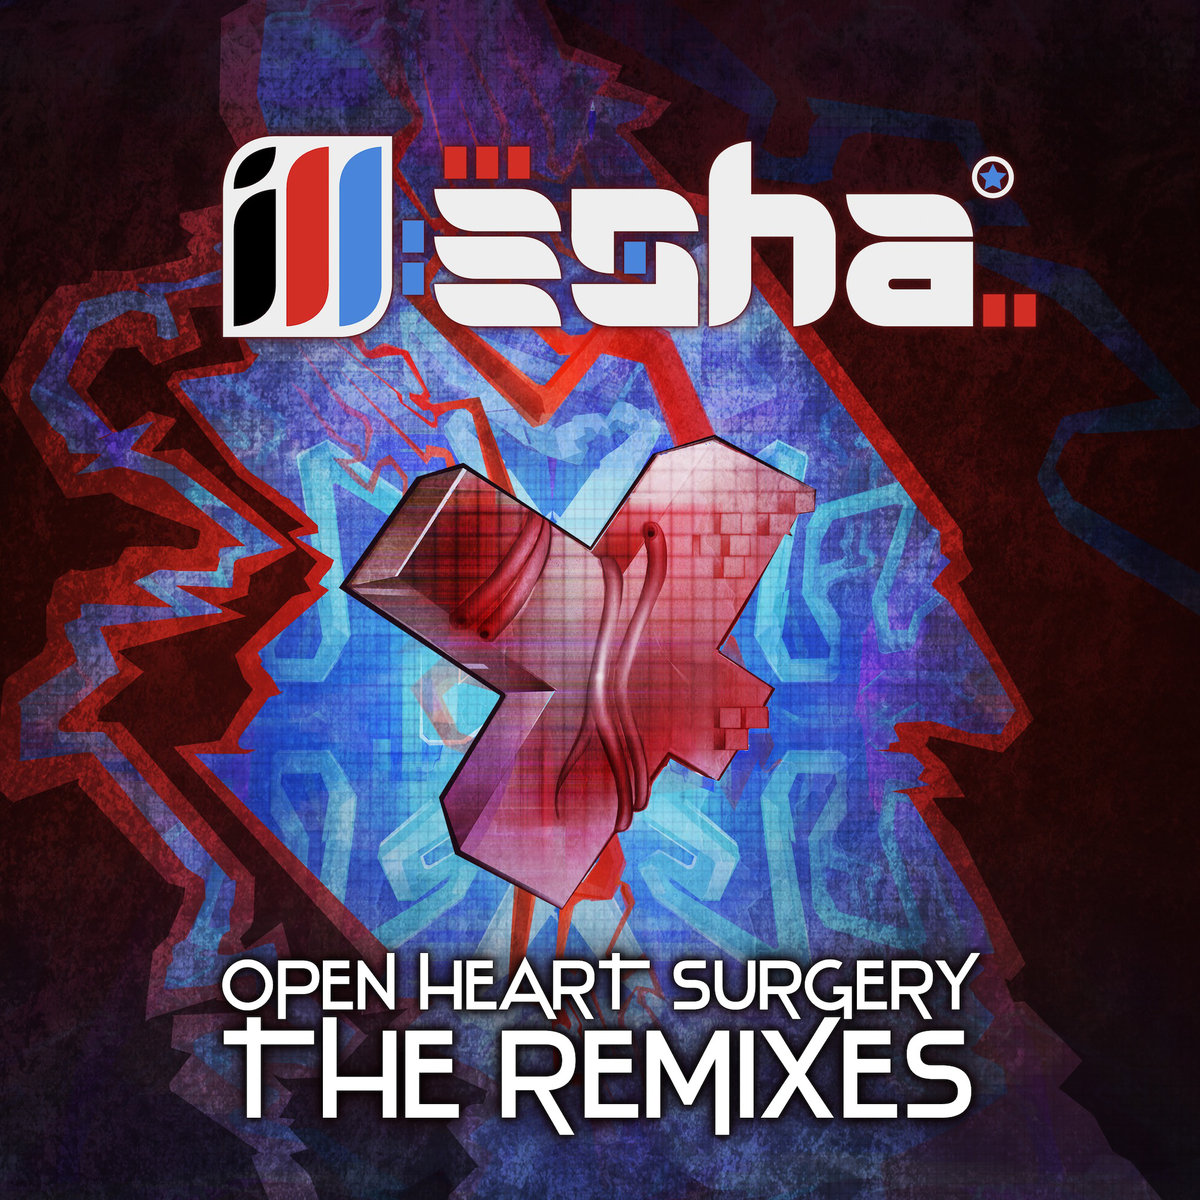 ill-esha - Happiness Is Lonely (ONE4ALL Remix) @ 'Open Heart Surgery: The Remixes' album (Austin)